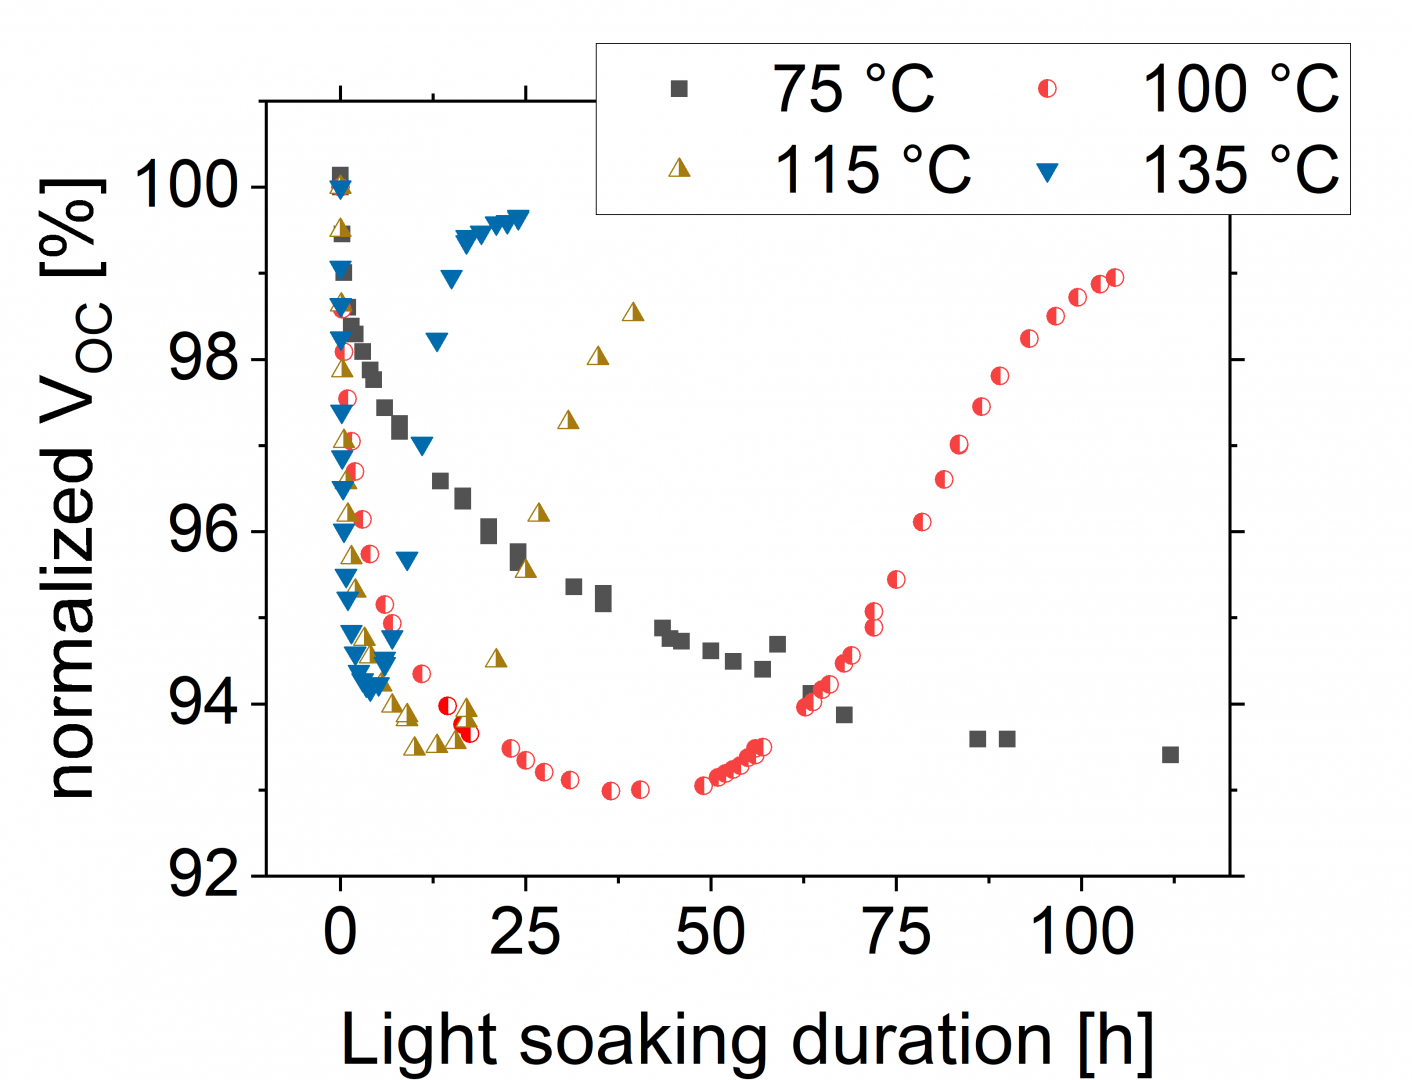 Figure 1. Typical LeTID degradation and regeneration behavior of the normalised open circuit voltage (Voc) of solar cells during illumination equivalent to one sun at 75°C, 100°C, 115°C and 135°C